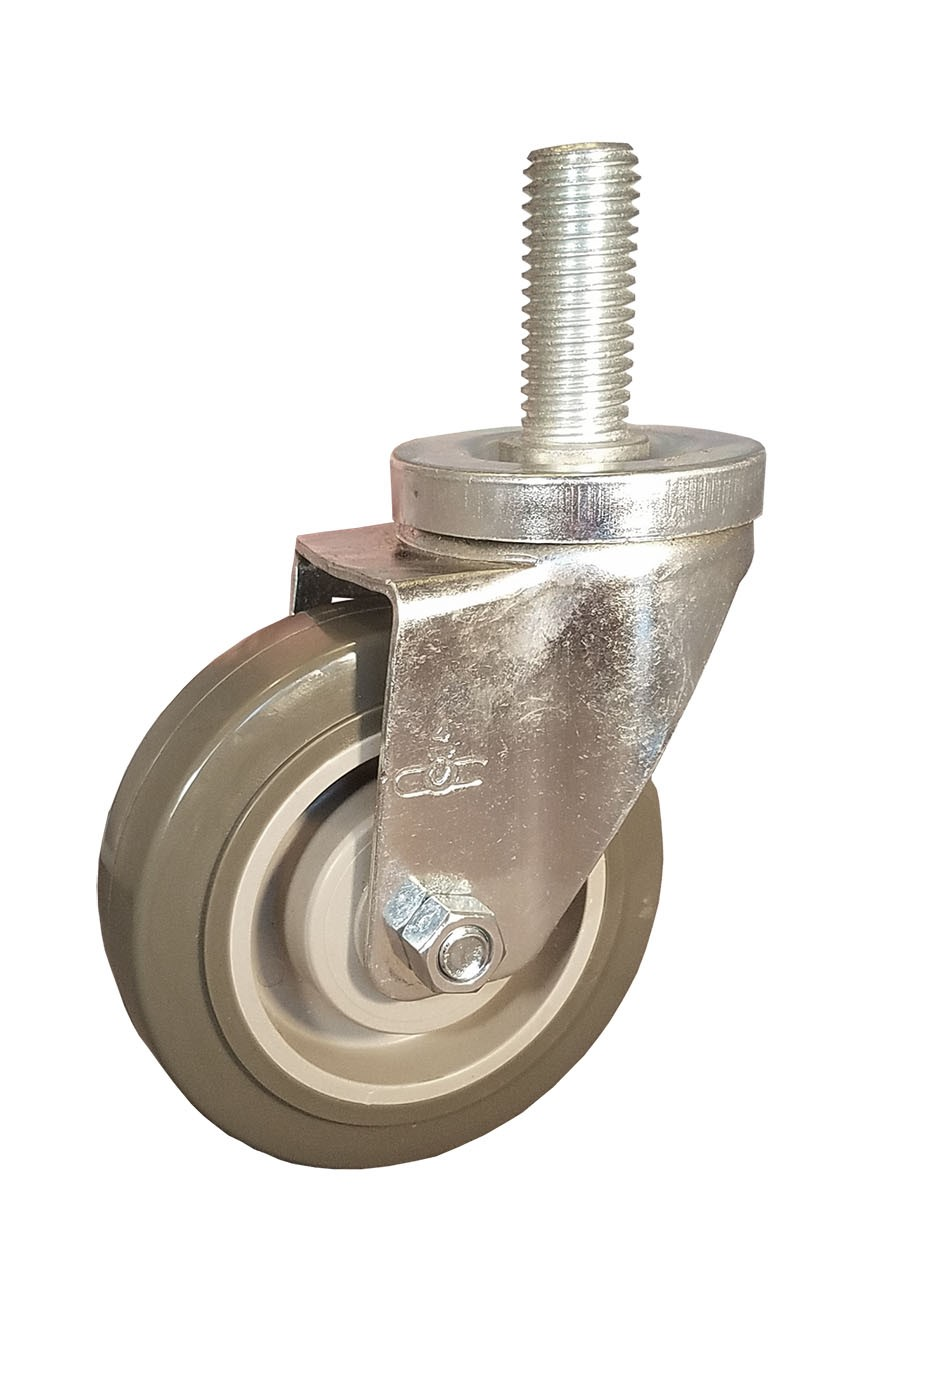 Swivel Caster with a gray Polyurethane on PolyO wheel, Zinc finish, and Threaded Stem connector.